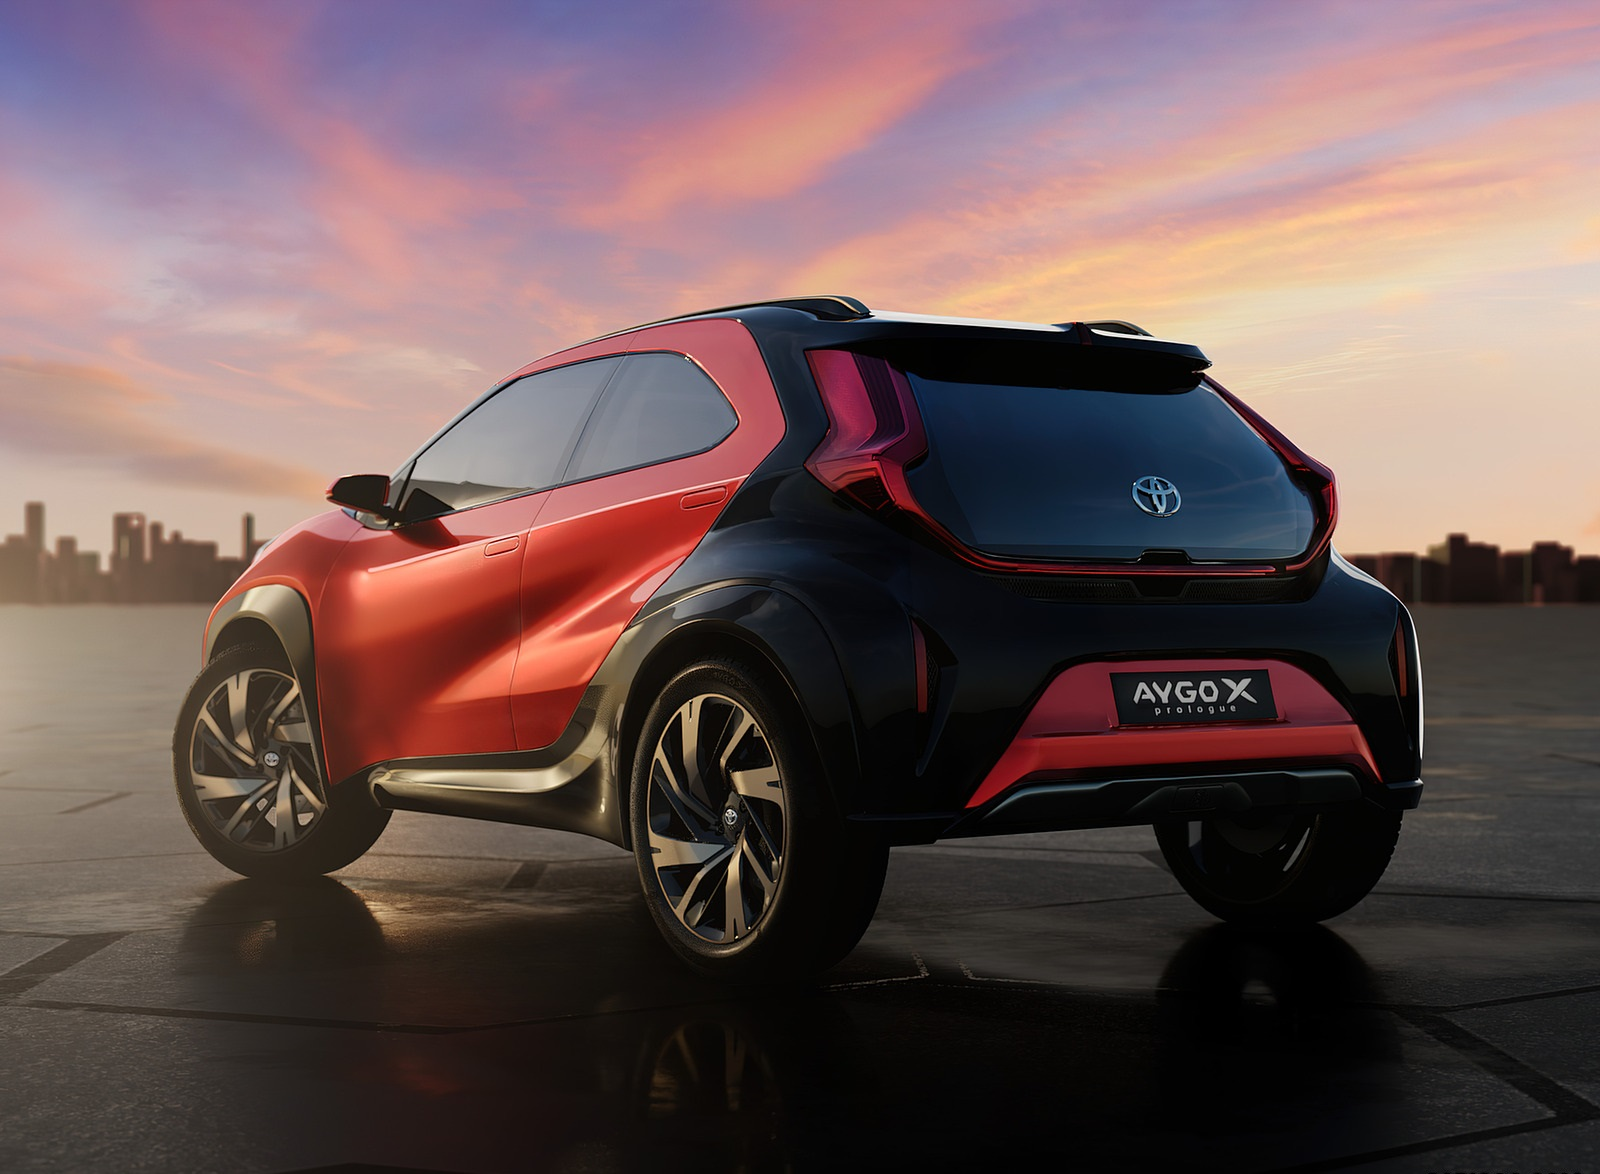 2021 Toyota Aygo X Prologue Concept Rear Three-Quarter Wallpapers (10)